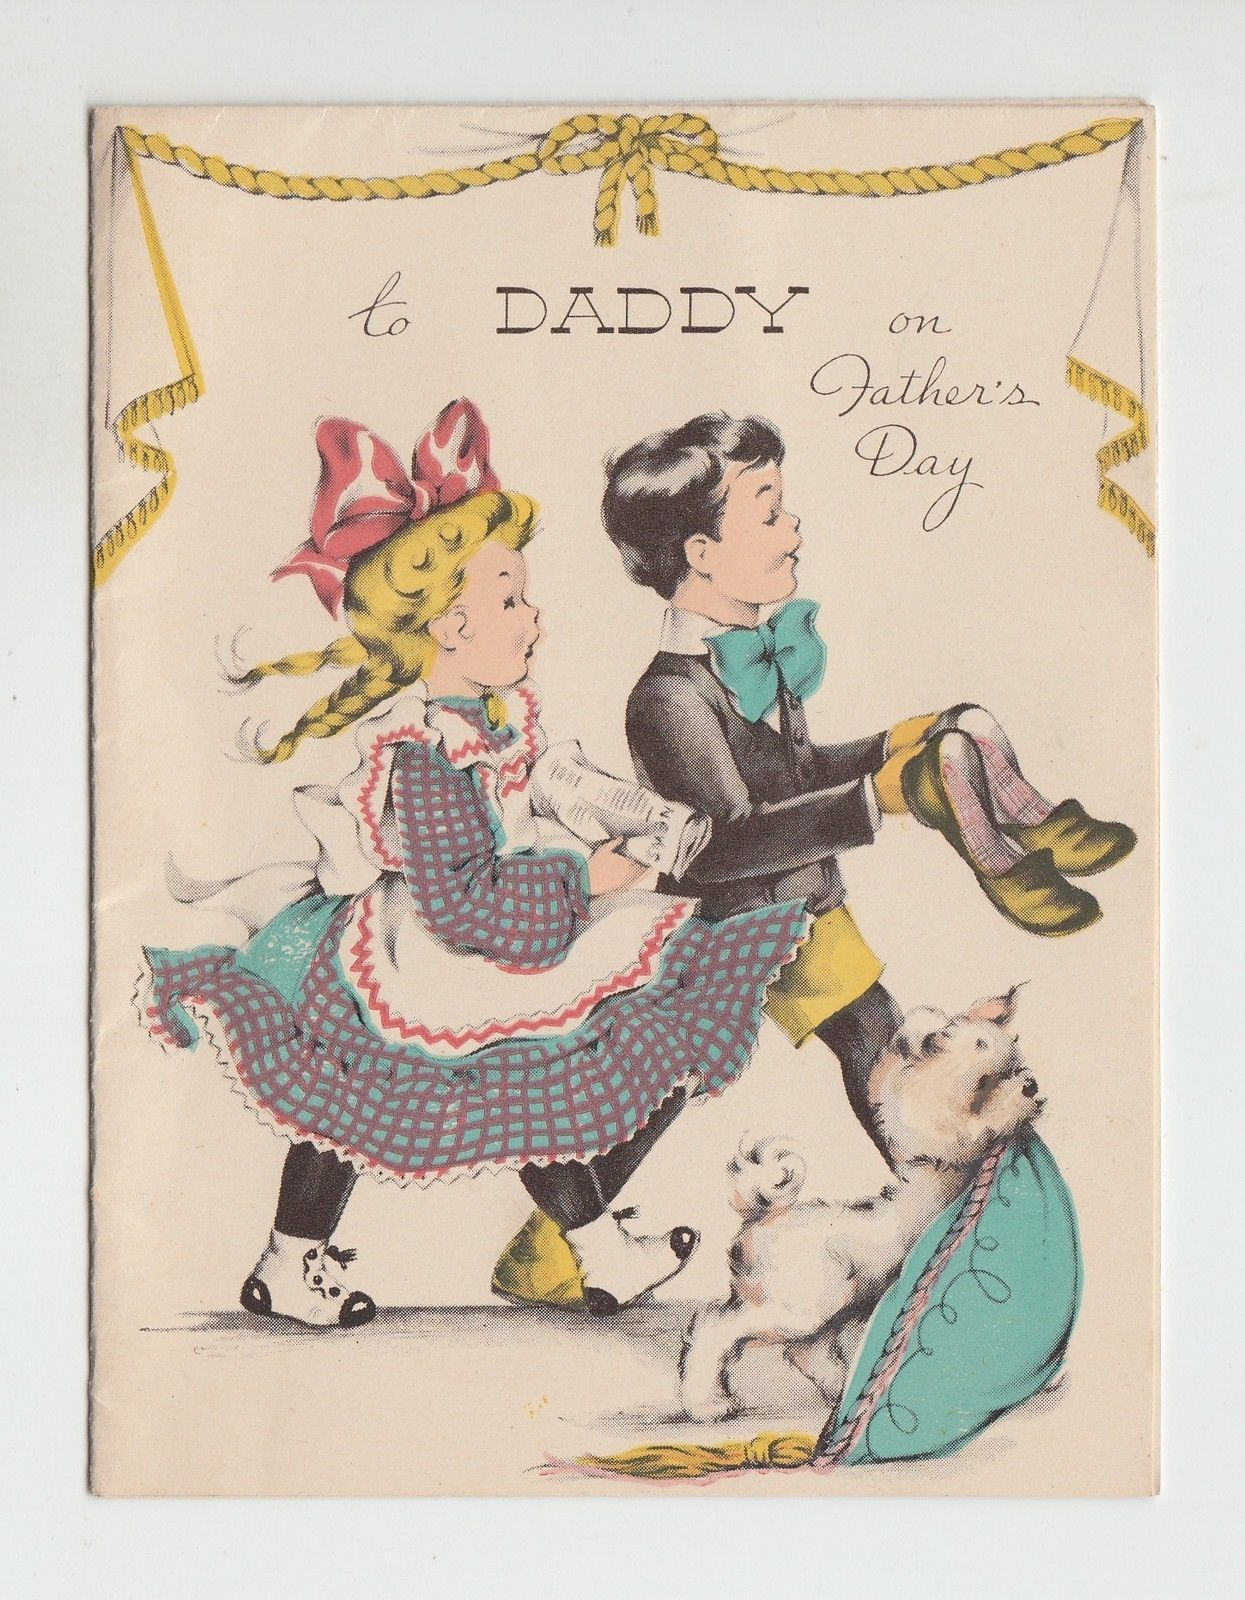 Vintage Children And Puppy To Daddy On Fathers Day Greeting Card